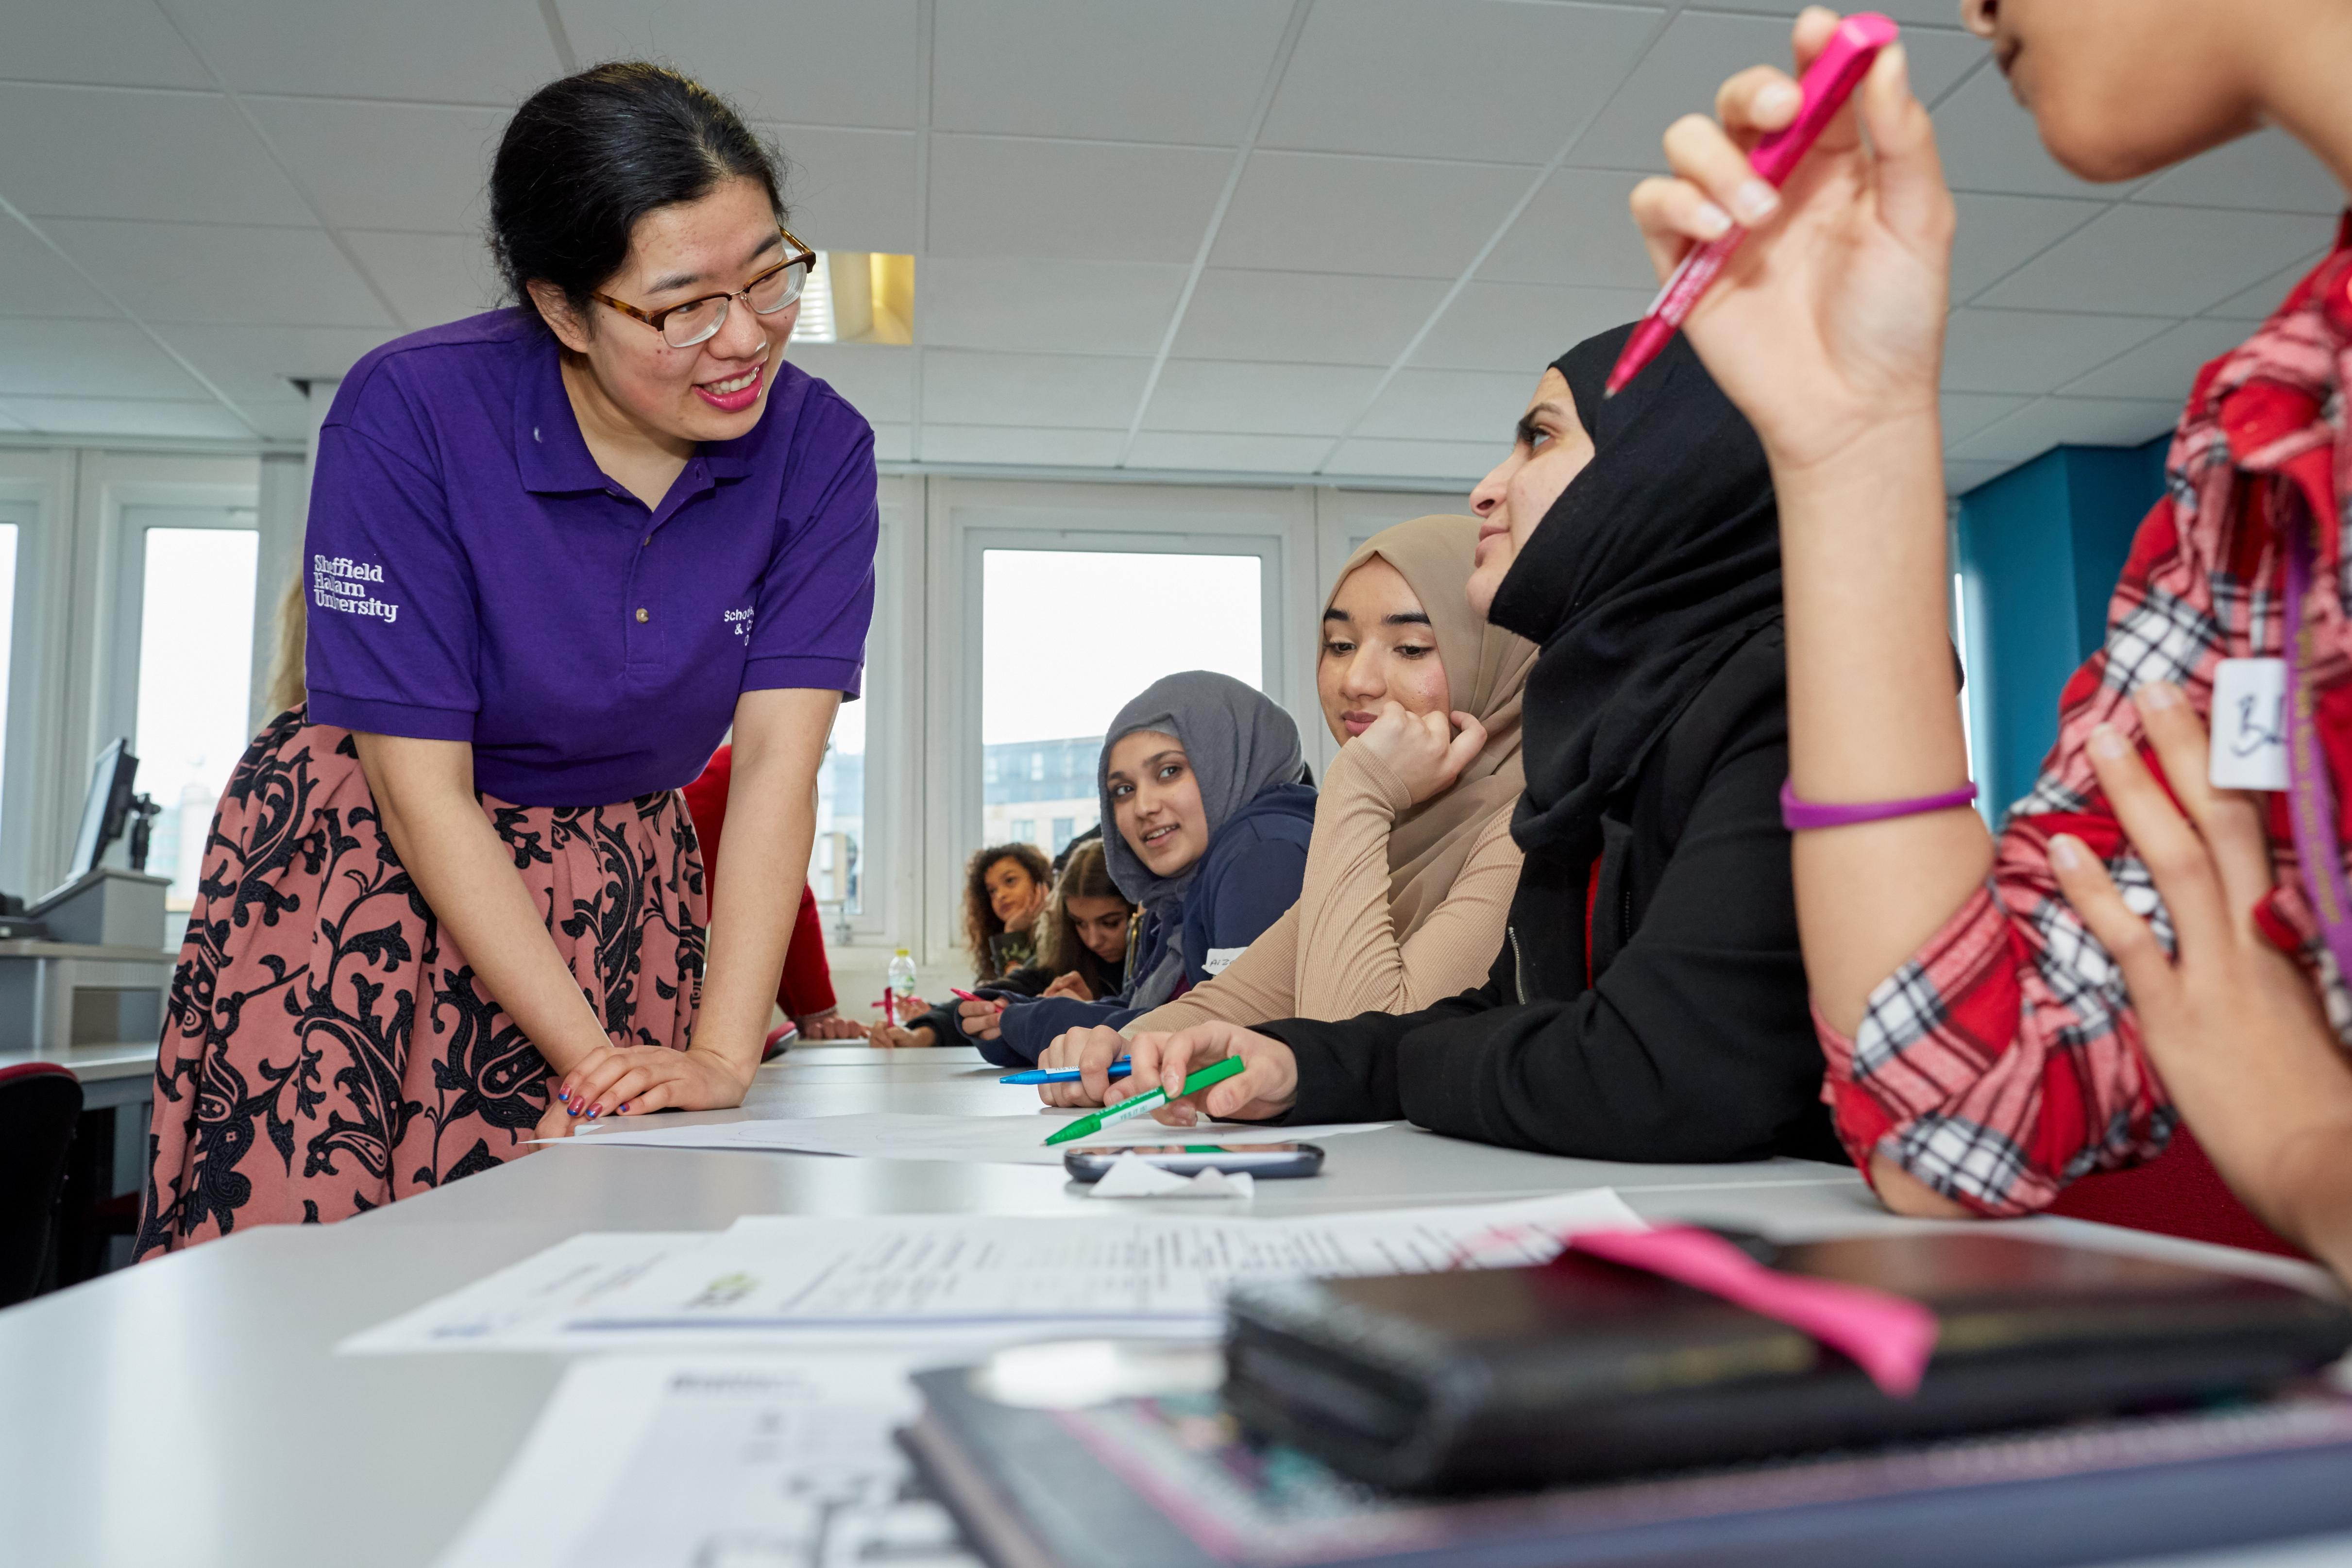 HeppSY+ Conference Makes a Big Impression on South Yorkshire Students